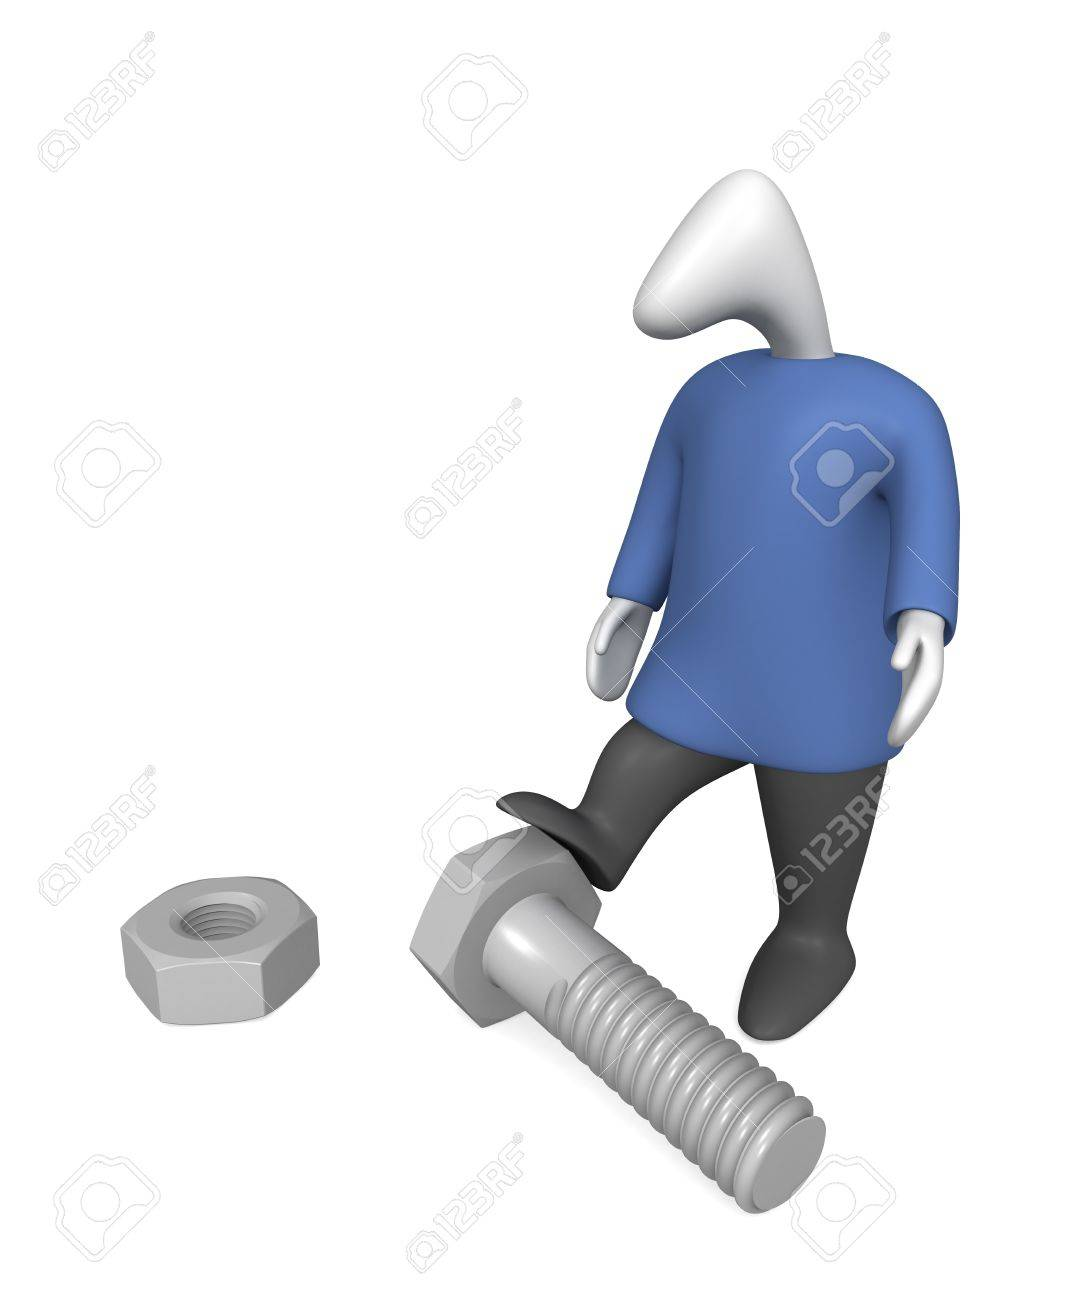 Three-dimensional image - a man stands near the bolt and nut. - 8195596